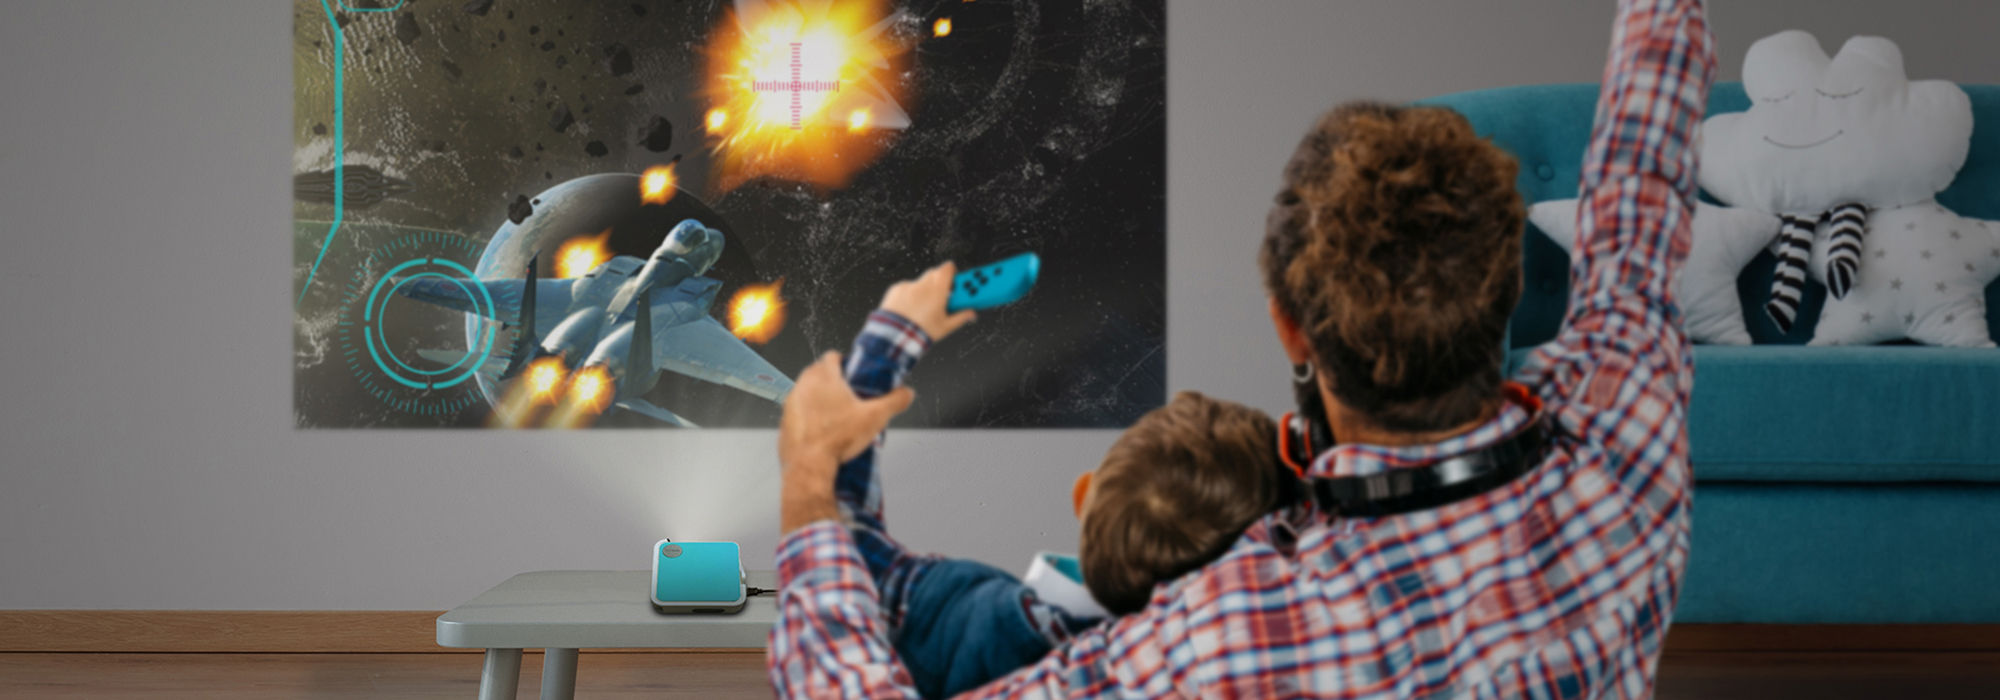 Entertainment On-the-Go: Now Available in Canada, the ViewSonic® M1 mini Plus Pocket Projector